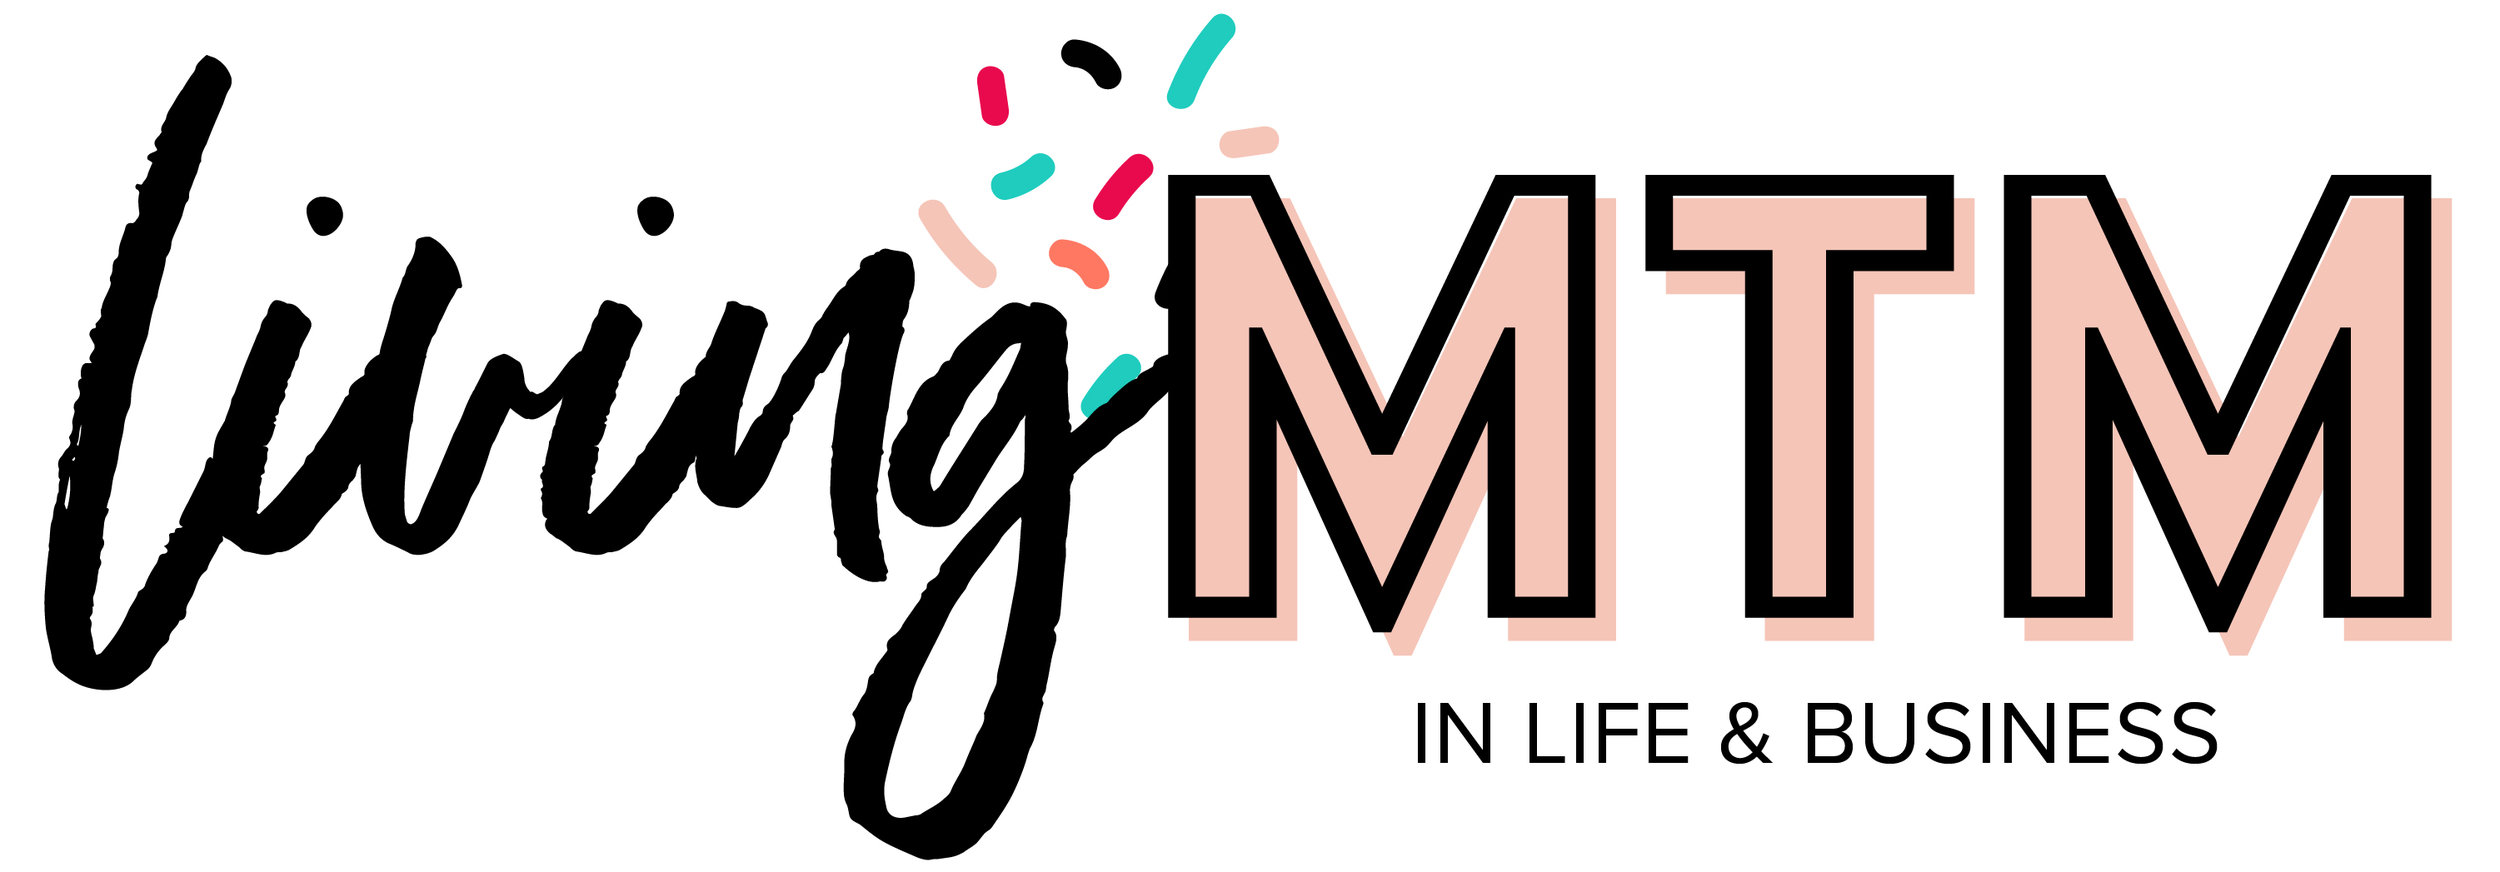 LIVING-MORE-THAN-MEDIOCRE-IN-LIFE-AND-BUSINESS-LOGO-02.jpg